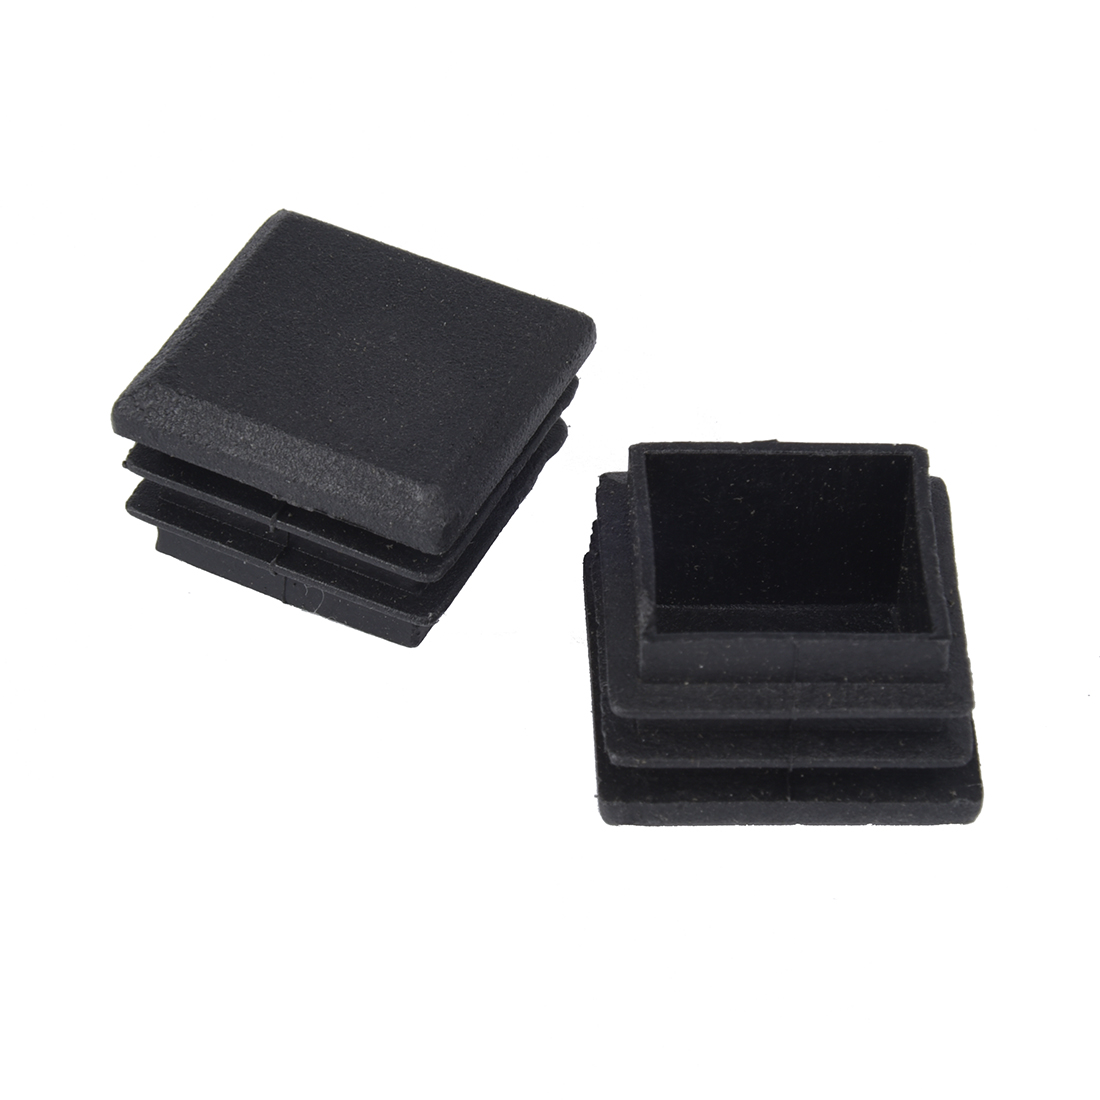 Promotion! 10 Pcs Plastic Black  Square Tube Inserts End Blanking Cap 25mm X 25mm